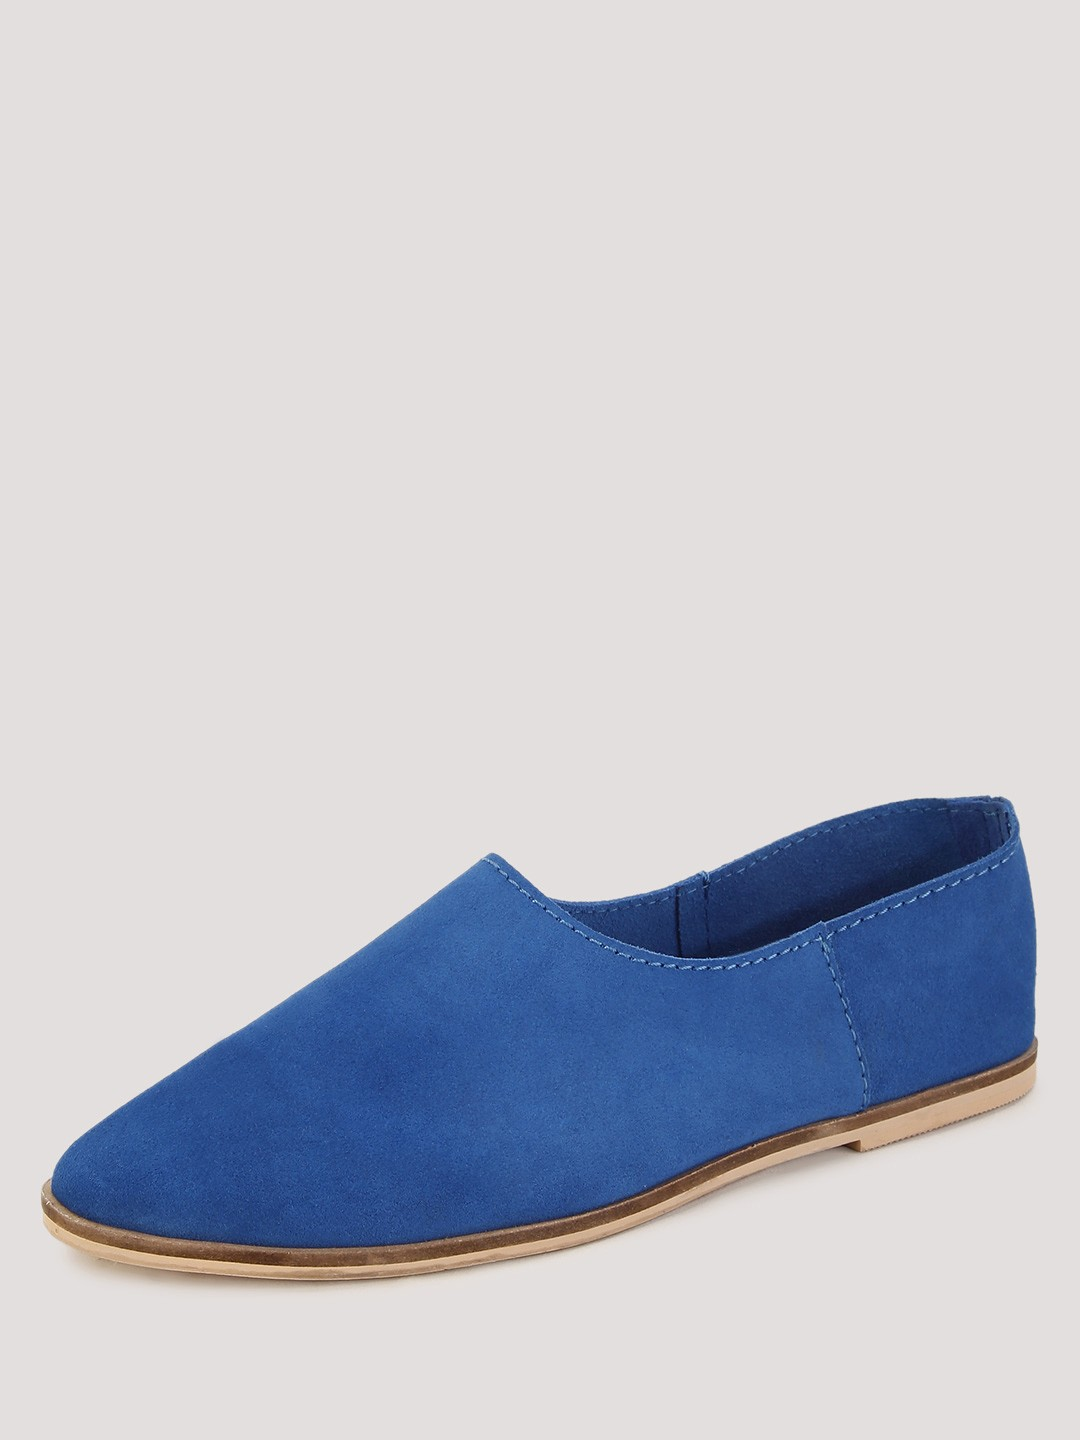 buy koovs suede slip on shoes for s blue